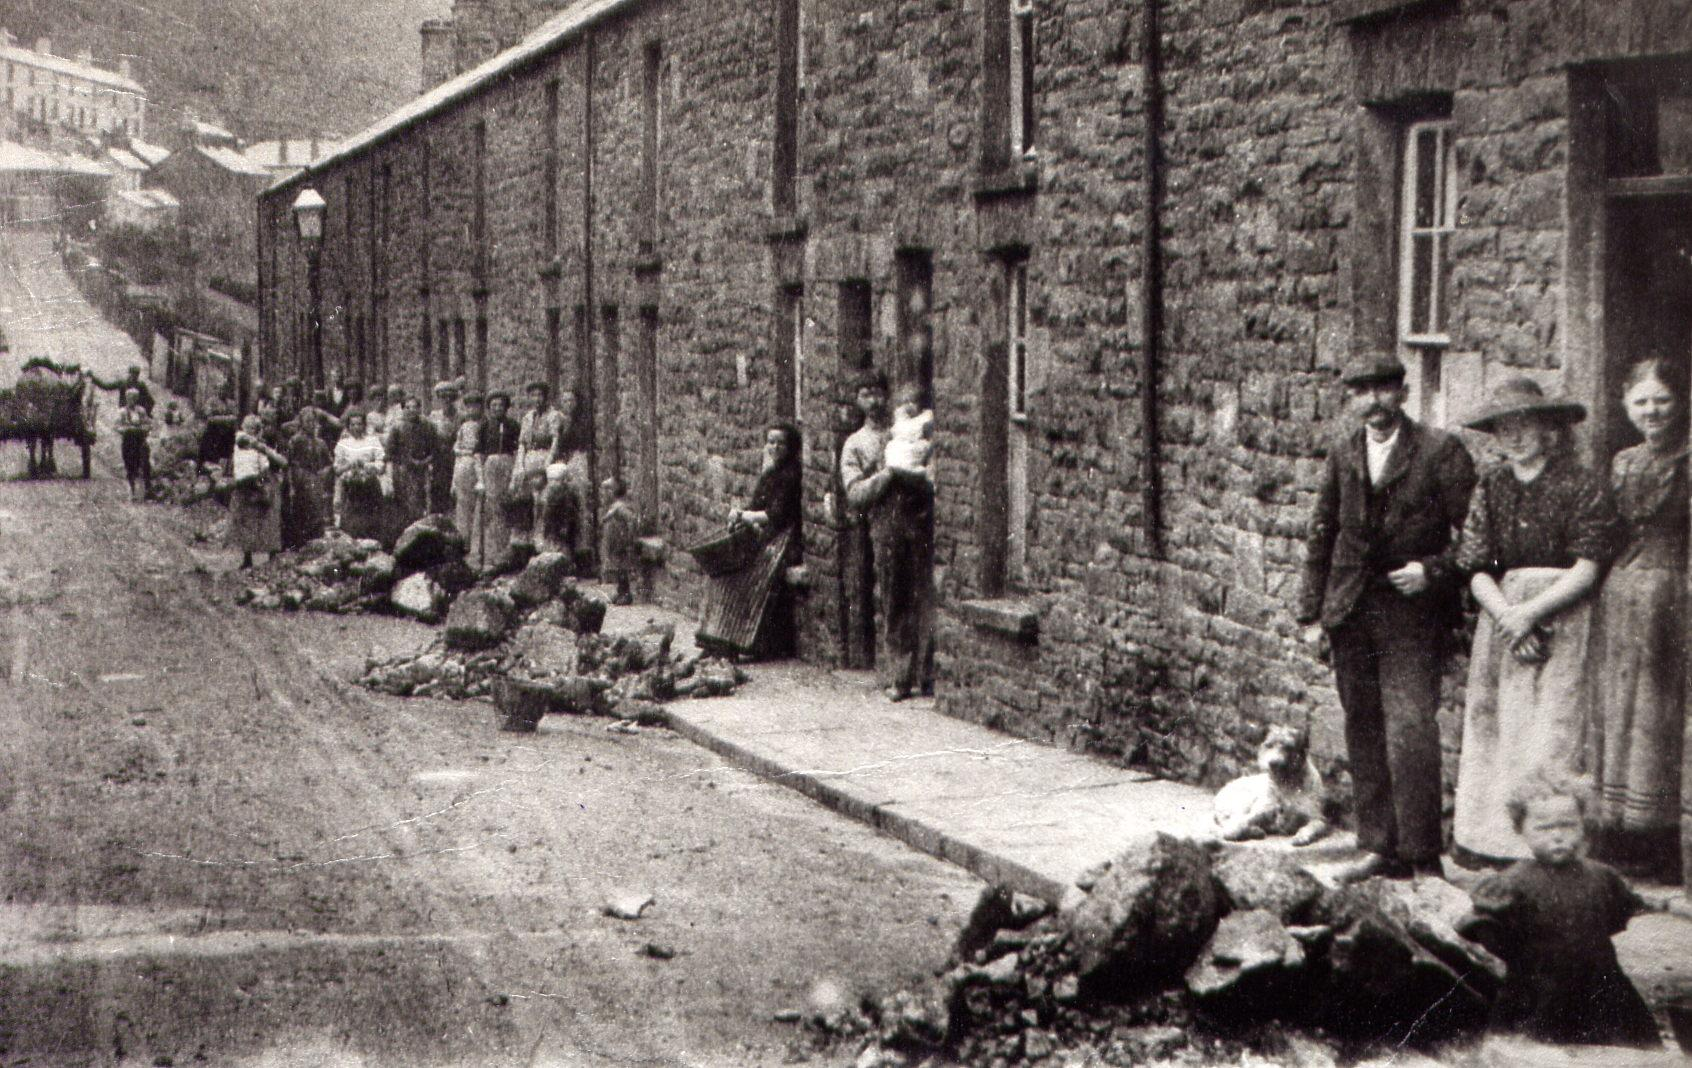 bad were living conditions poor newly industrilised towns Simply, the working conditions were terrible during the industrial revolution as factories were being built, businesses were in need of workers with a long line of people willing to work, employers could set wages as low as they wanted because people were willing to do work as long as they got paid.